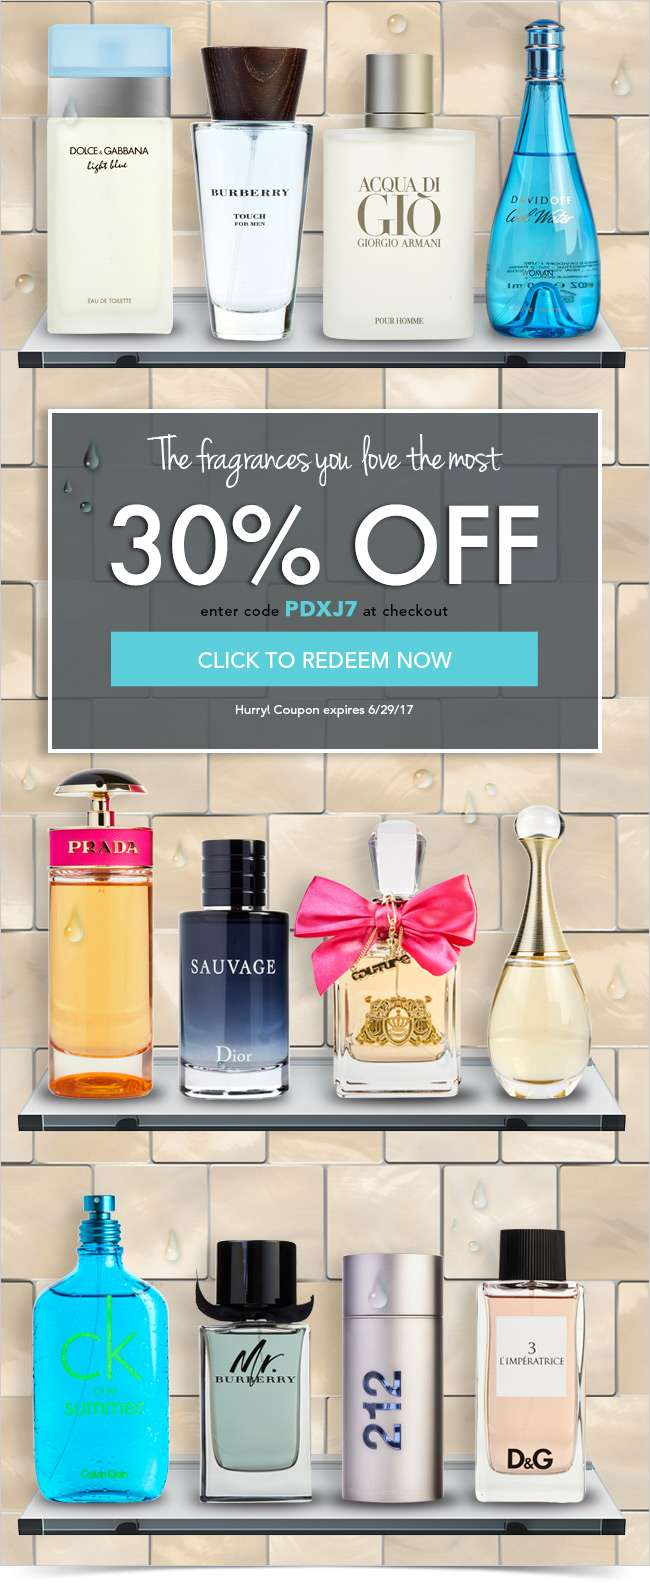 The fragrances you love the most